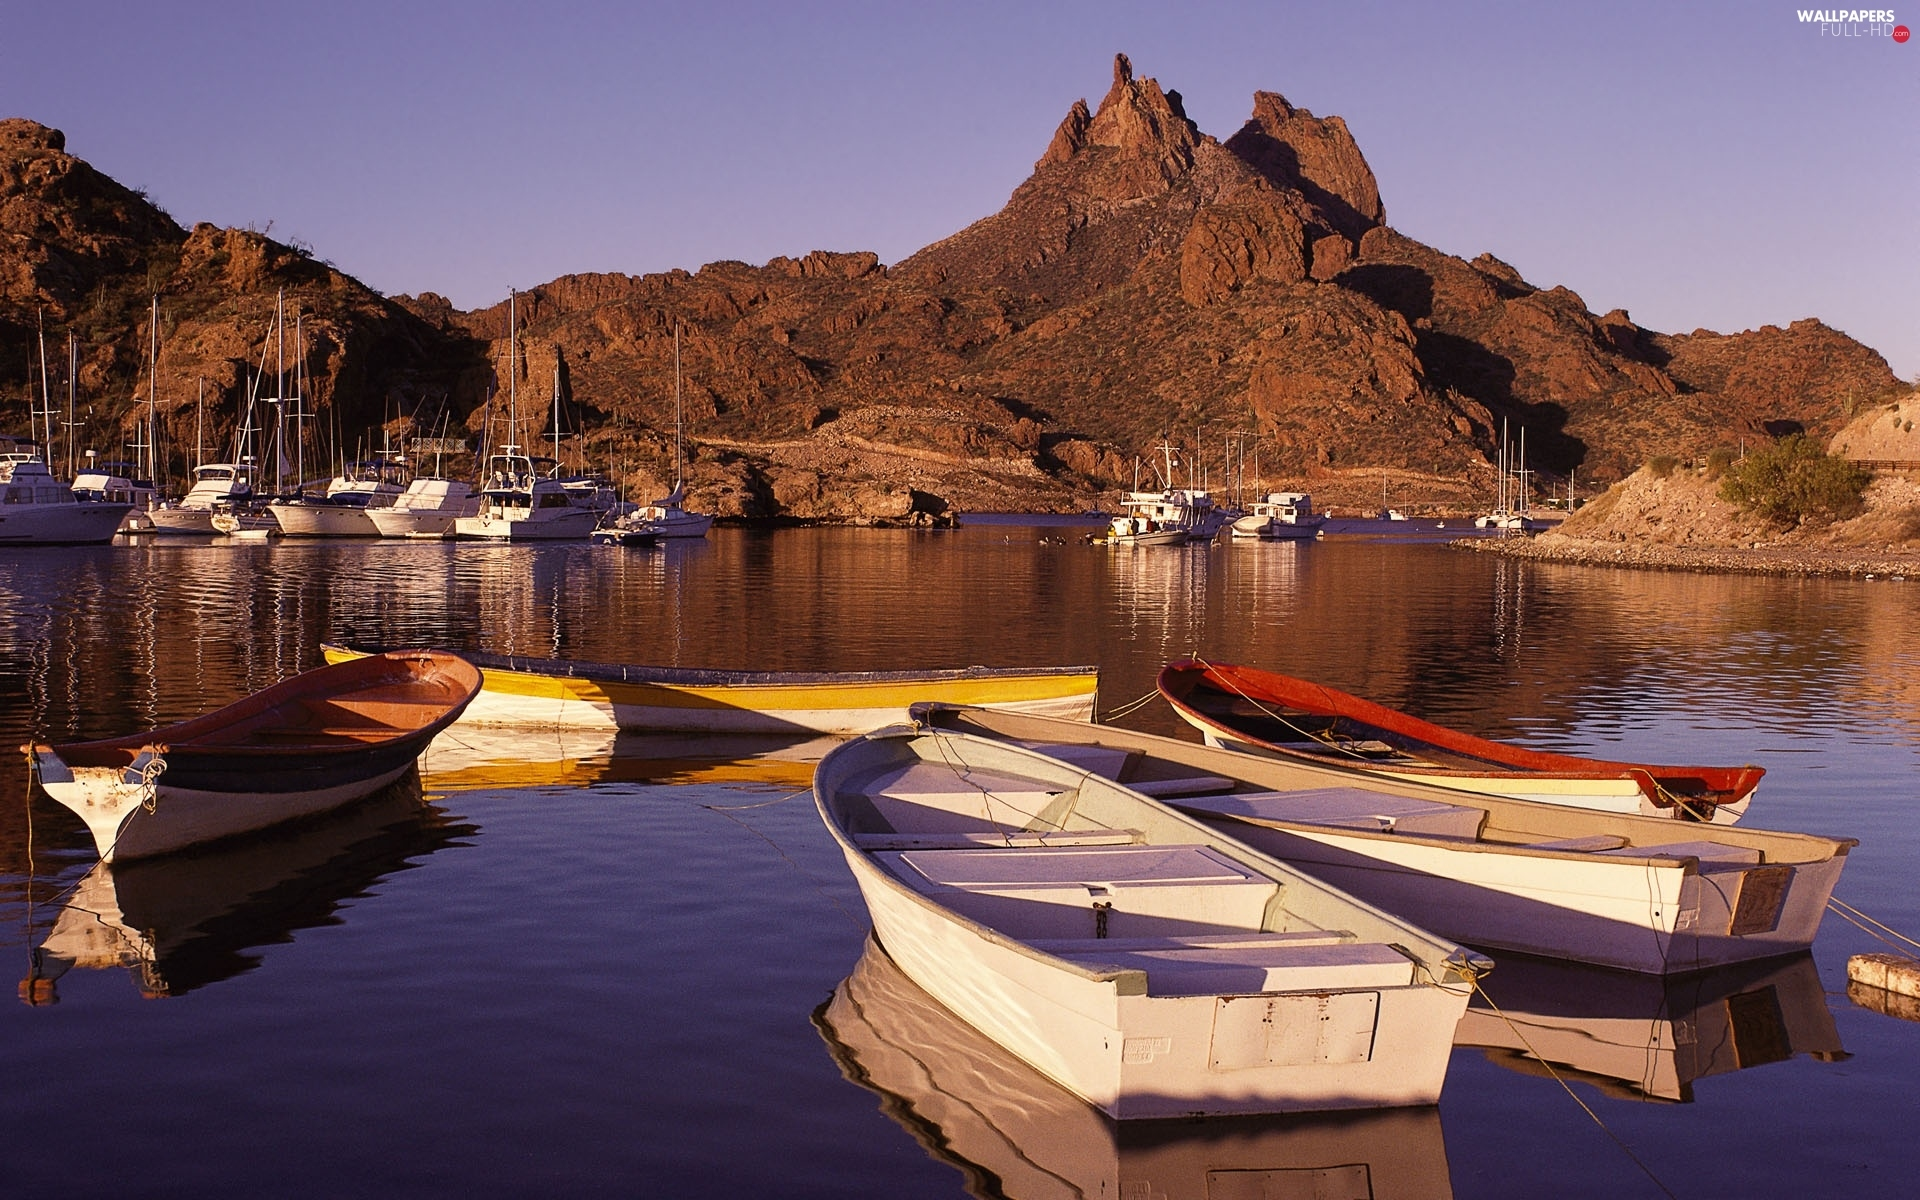 Boats, Gulf, Harbor, mountains, Mexico